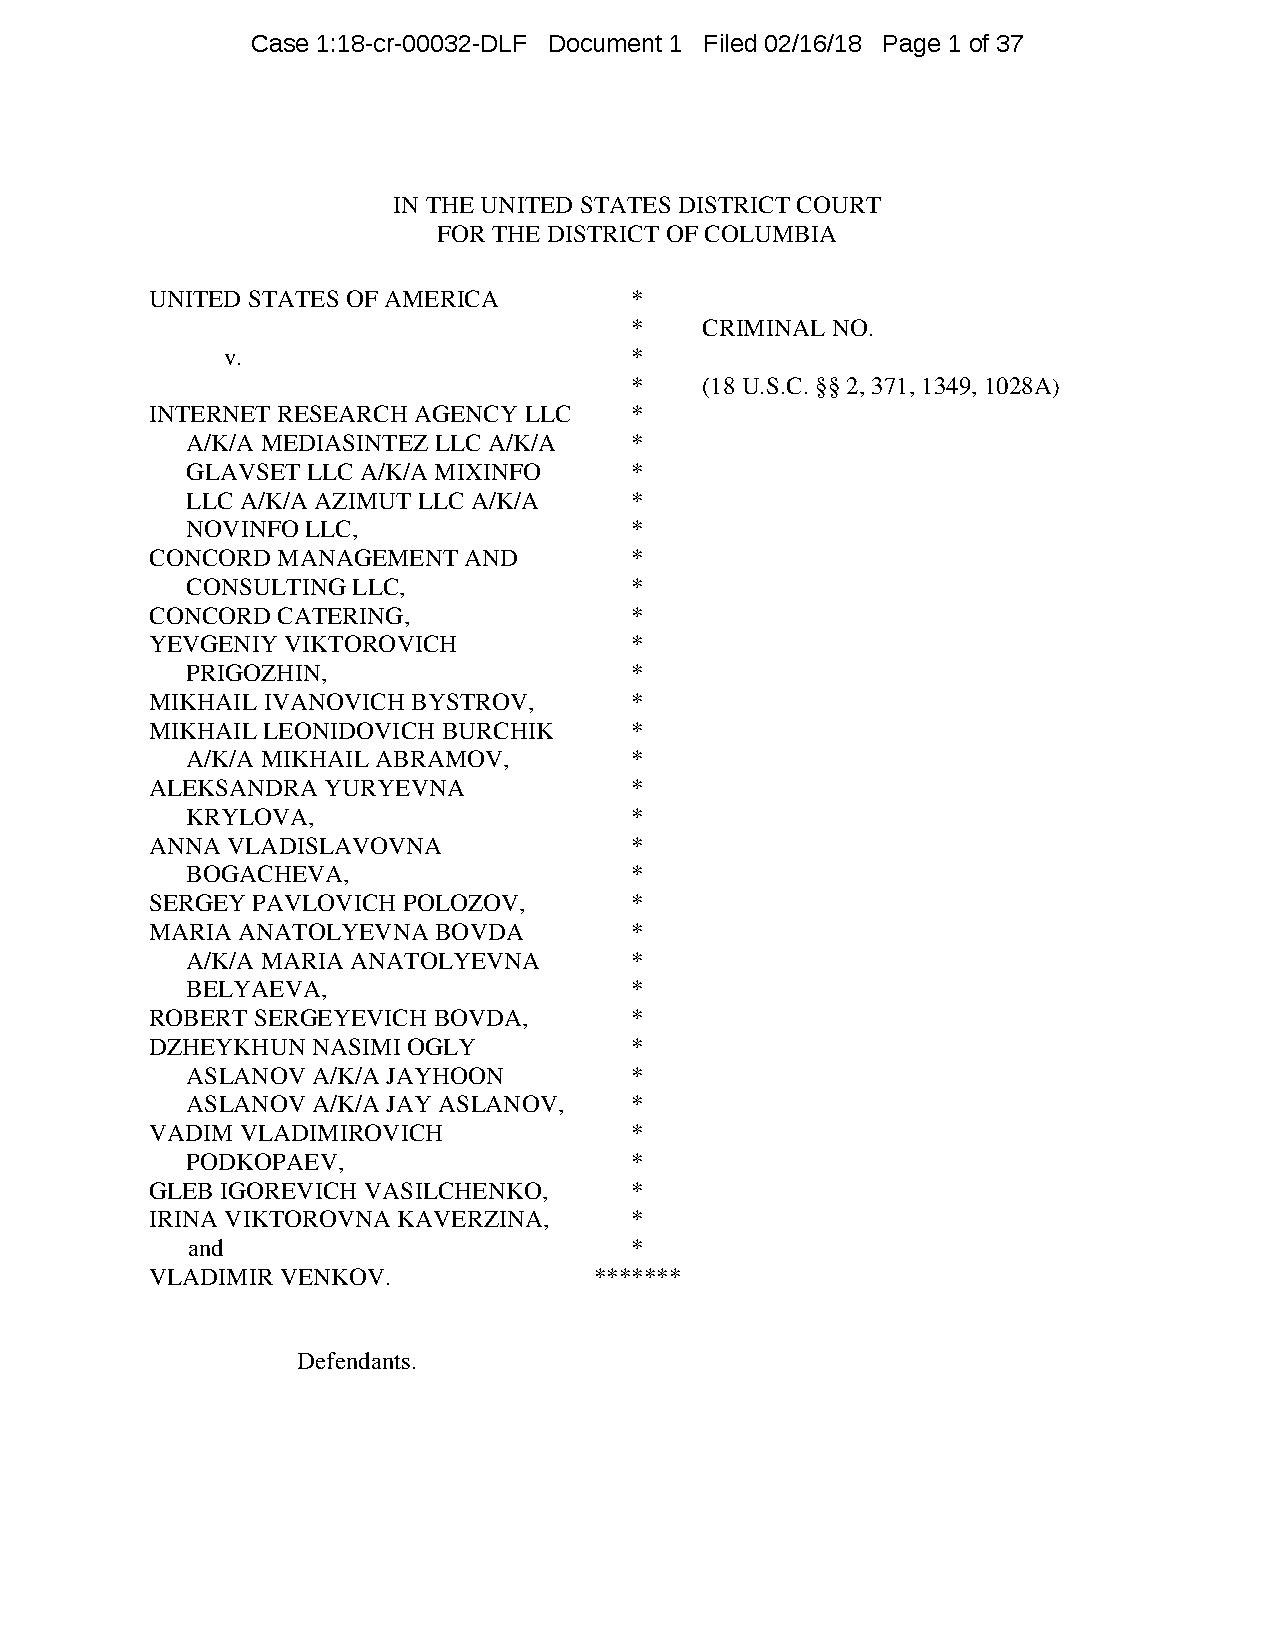 Page:Internet Research Agency Indictment Feb 2018 with text